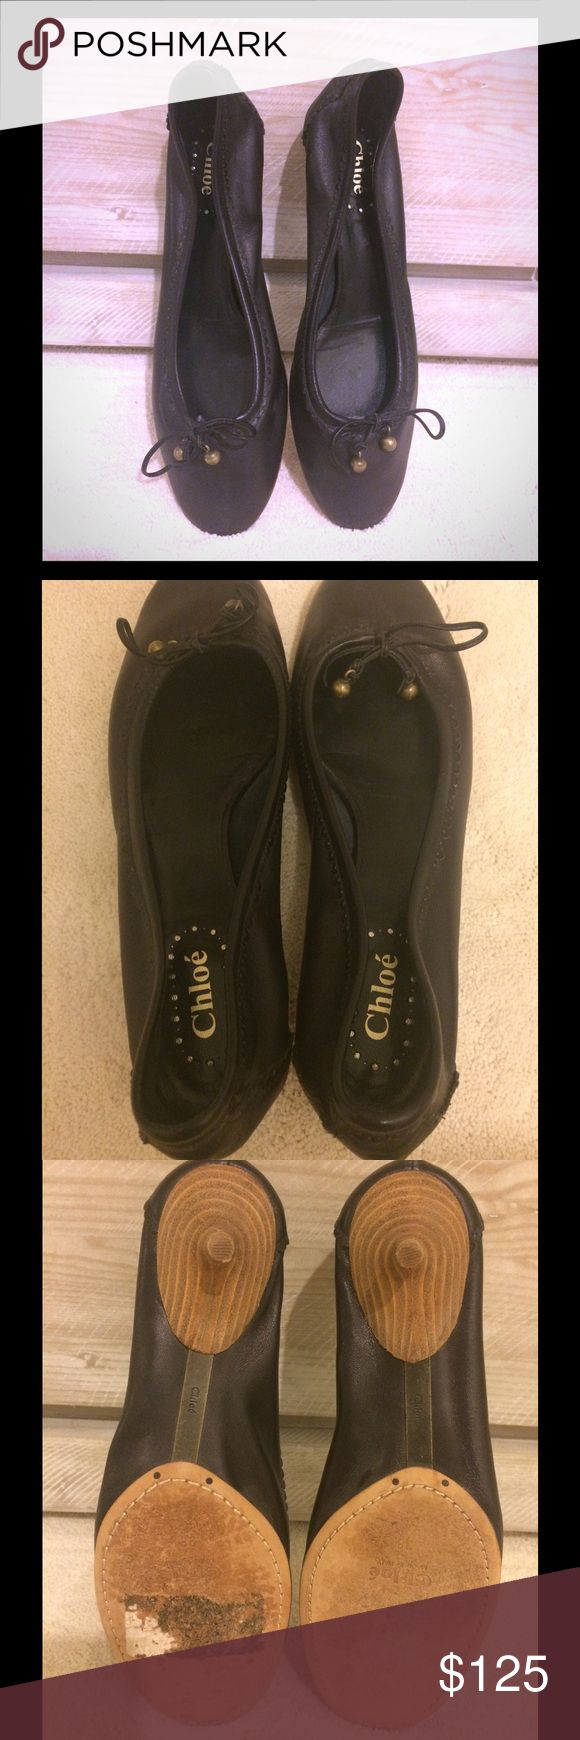 Chloe Lambskin Kitten Heels Softest leather ever. Chloe black lambskin ballet slippers with the slightest kitten heel to add a bit of formality. Incredibly comfortable & versatile. From the mid 2000s. Worn once (a bit too big) Excellent condition. These will fit a larger 7 1/2-8. Chloe Shoes